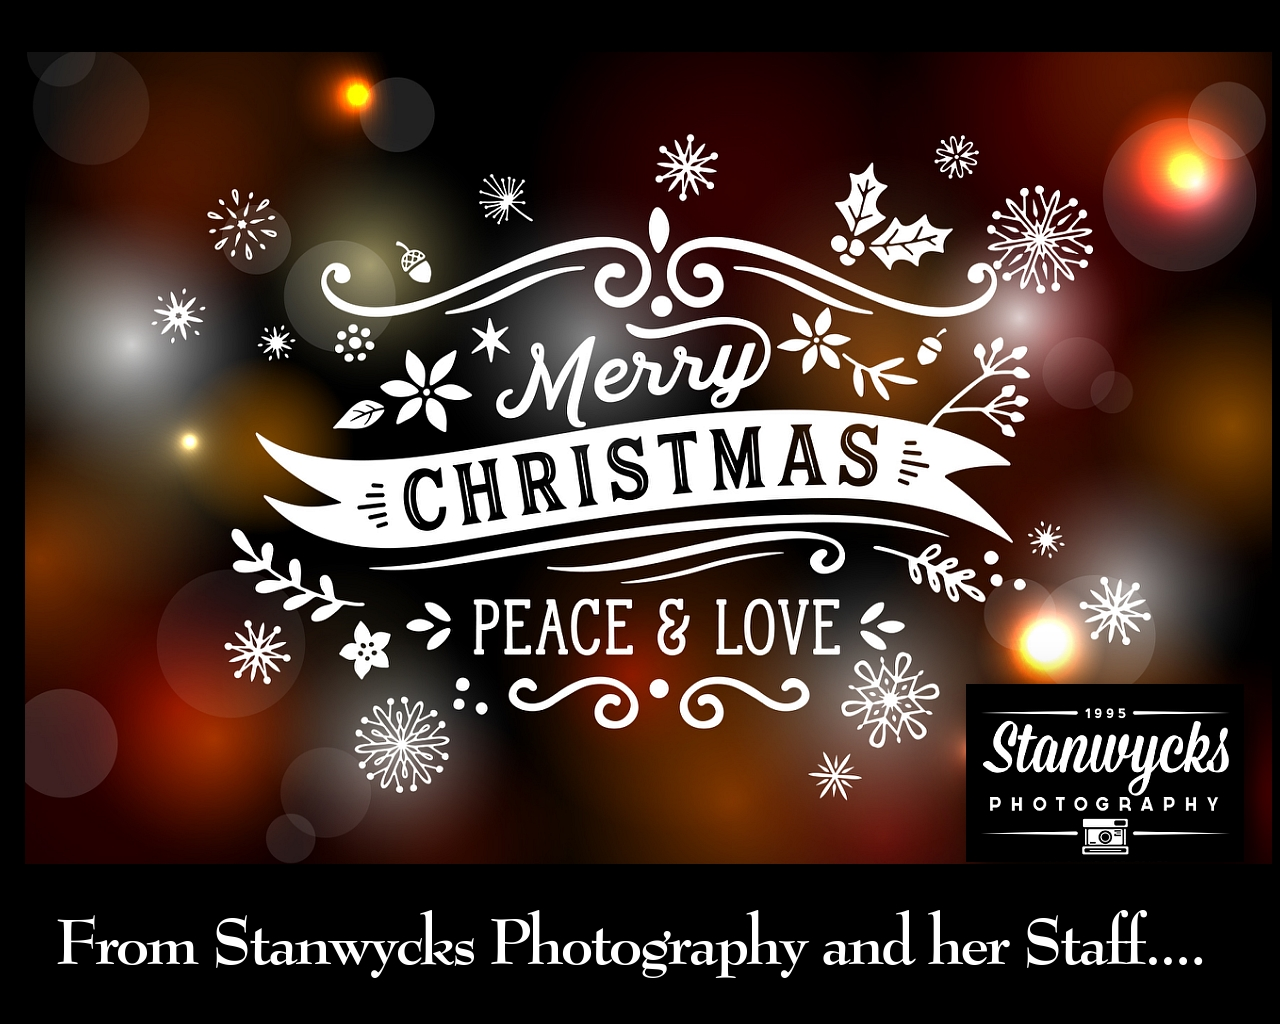 Holiday Web Pages 049 (Sheet 49)